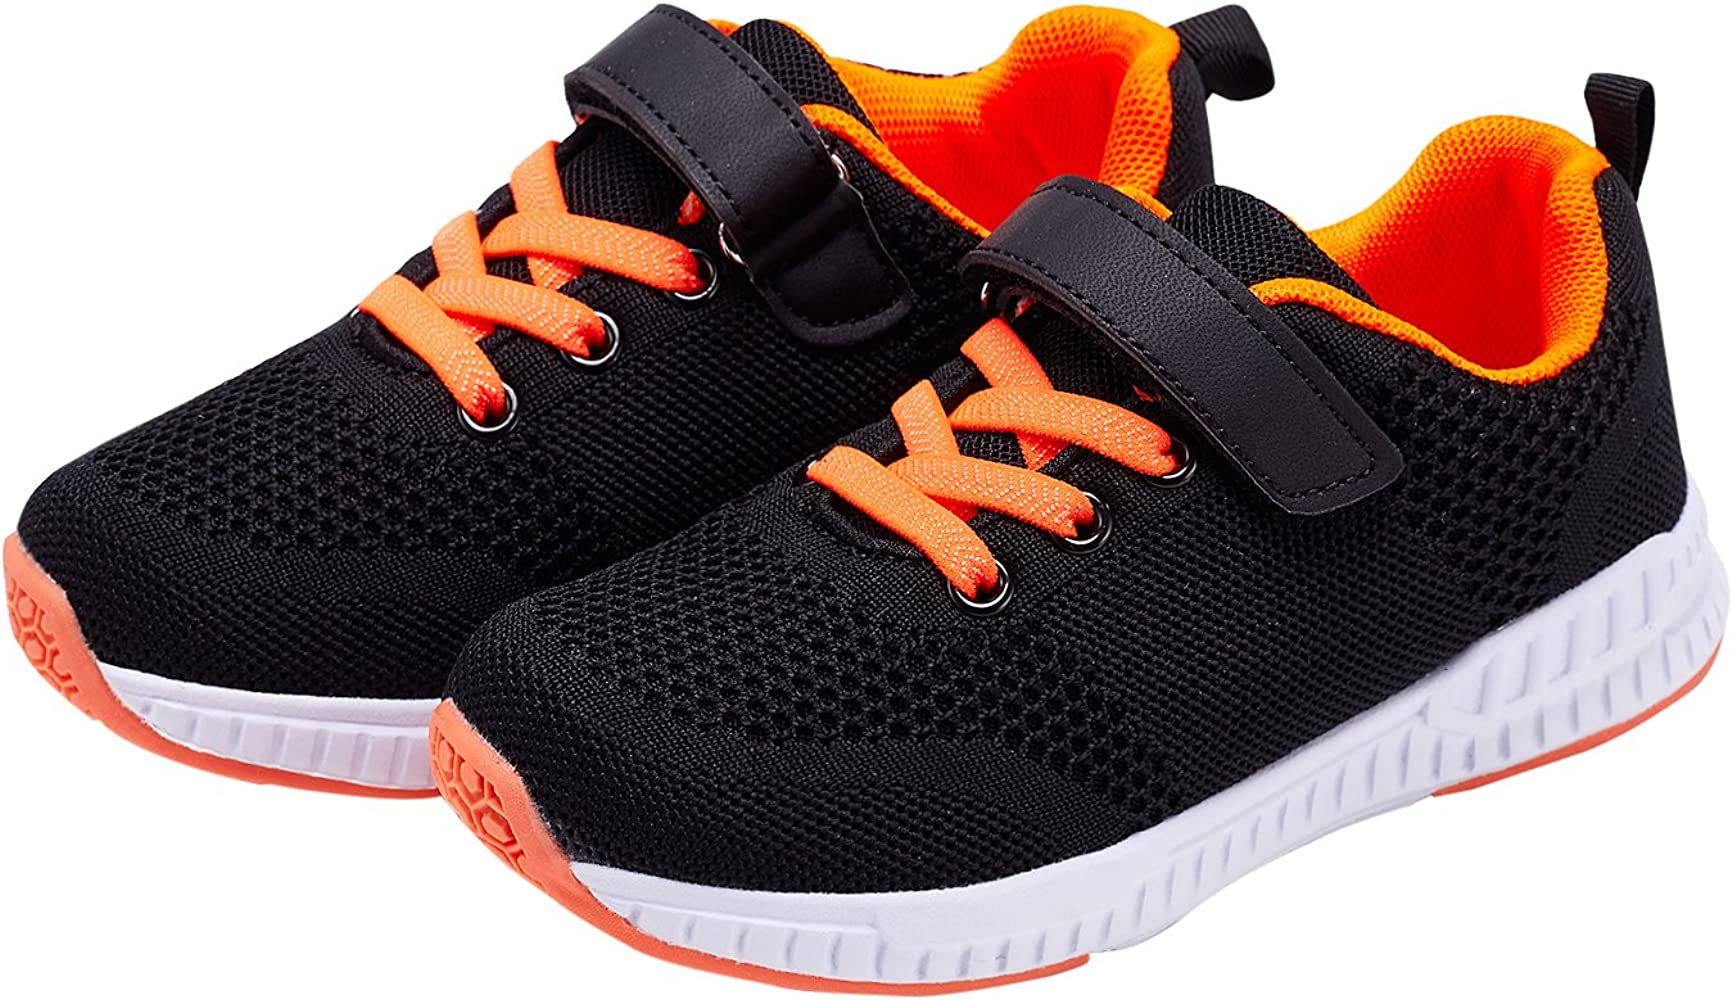 Toddler//Little Kid//Big Kid Boys Girls Breathable Lightweight Running Shoes Sneakers